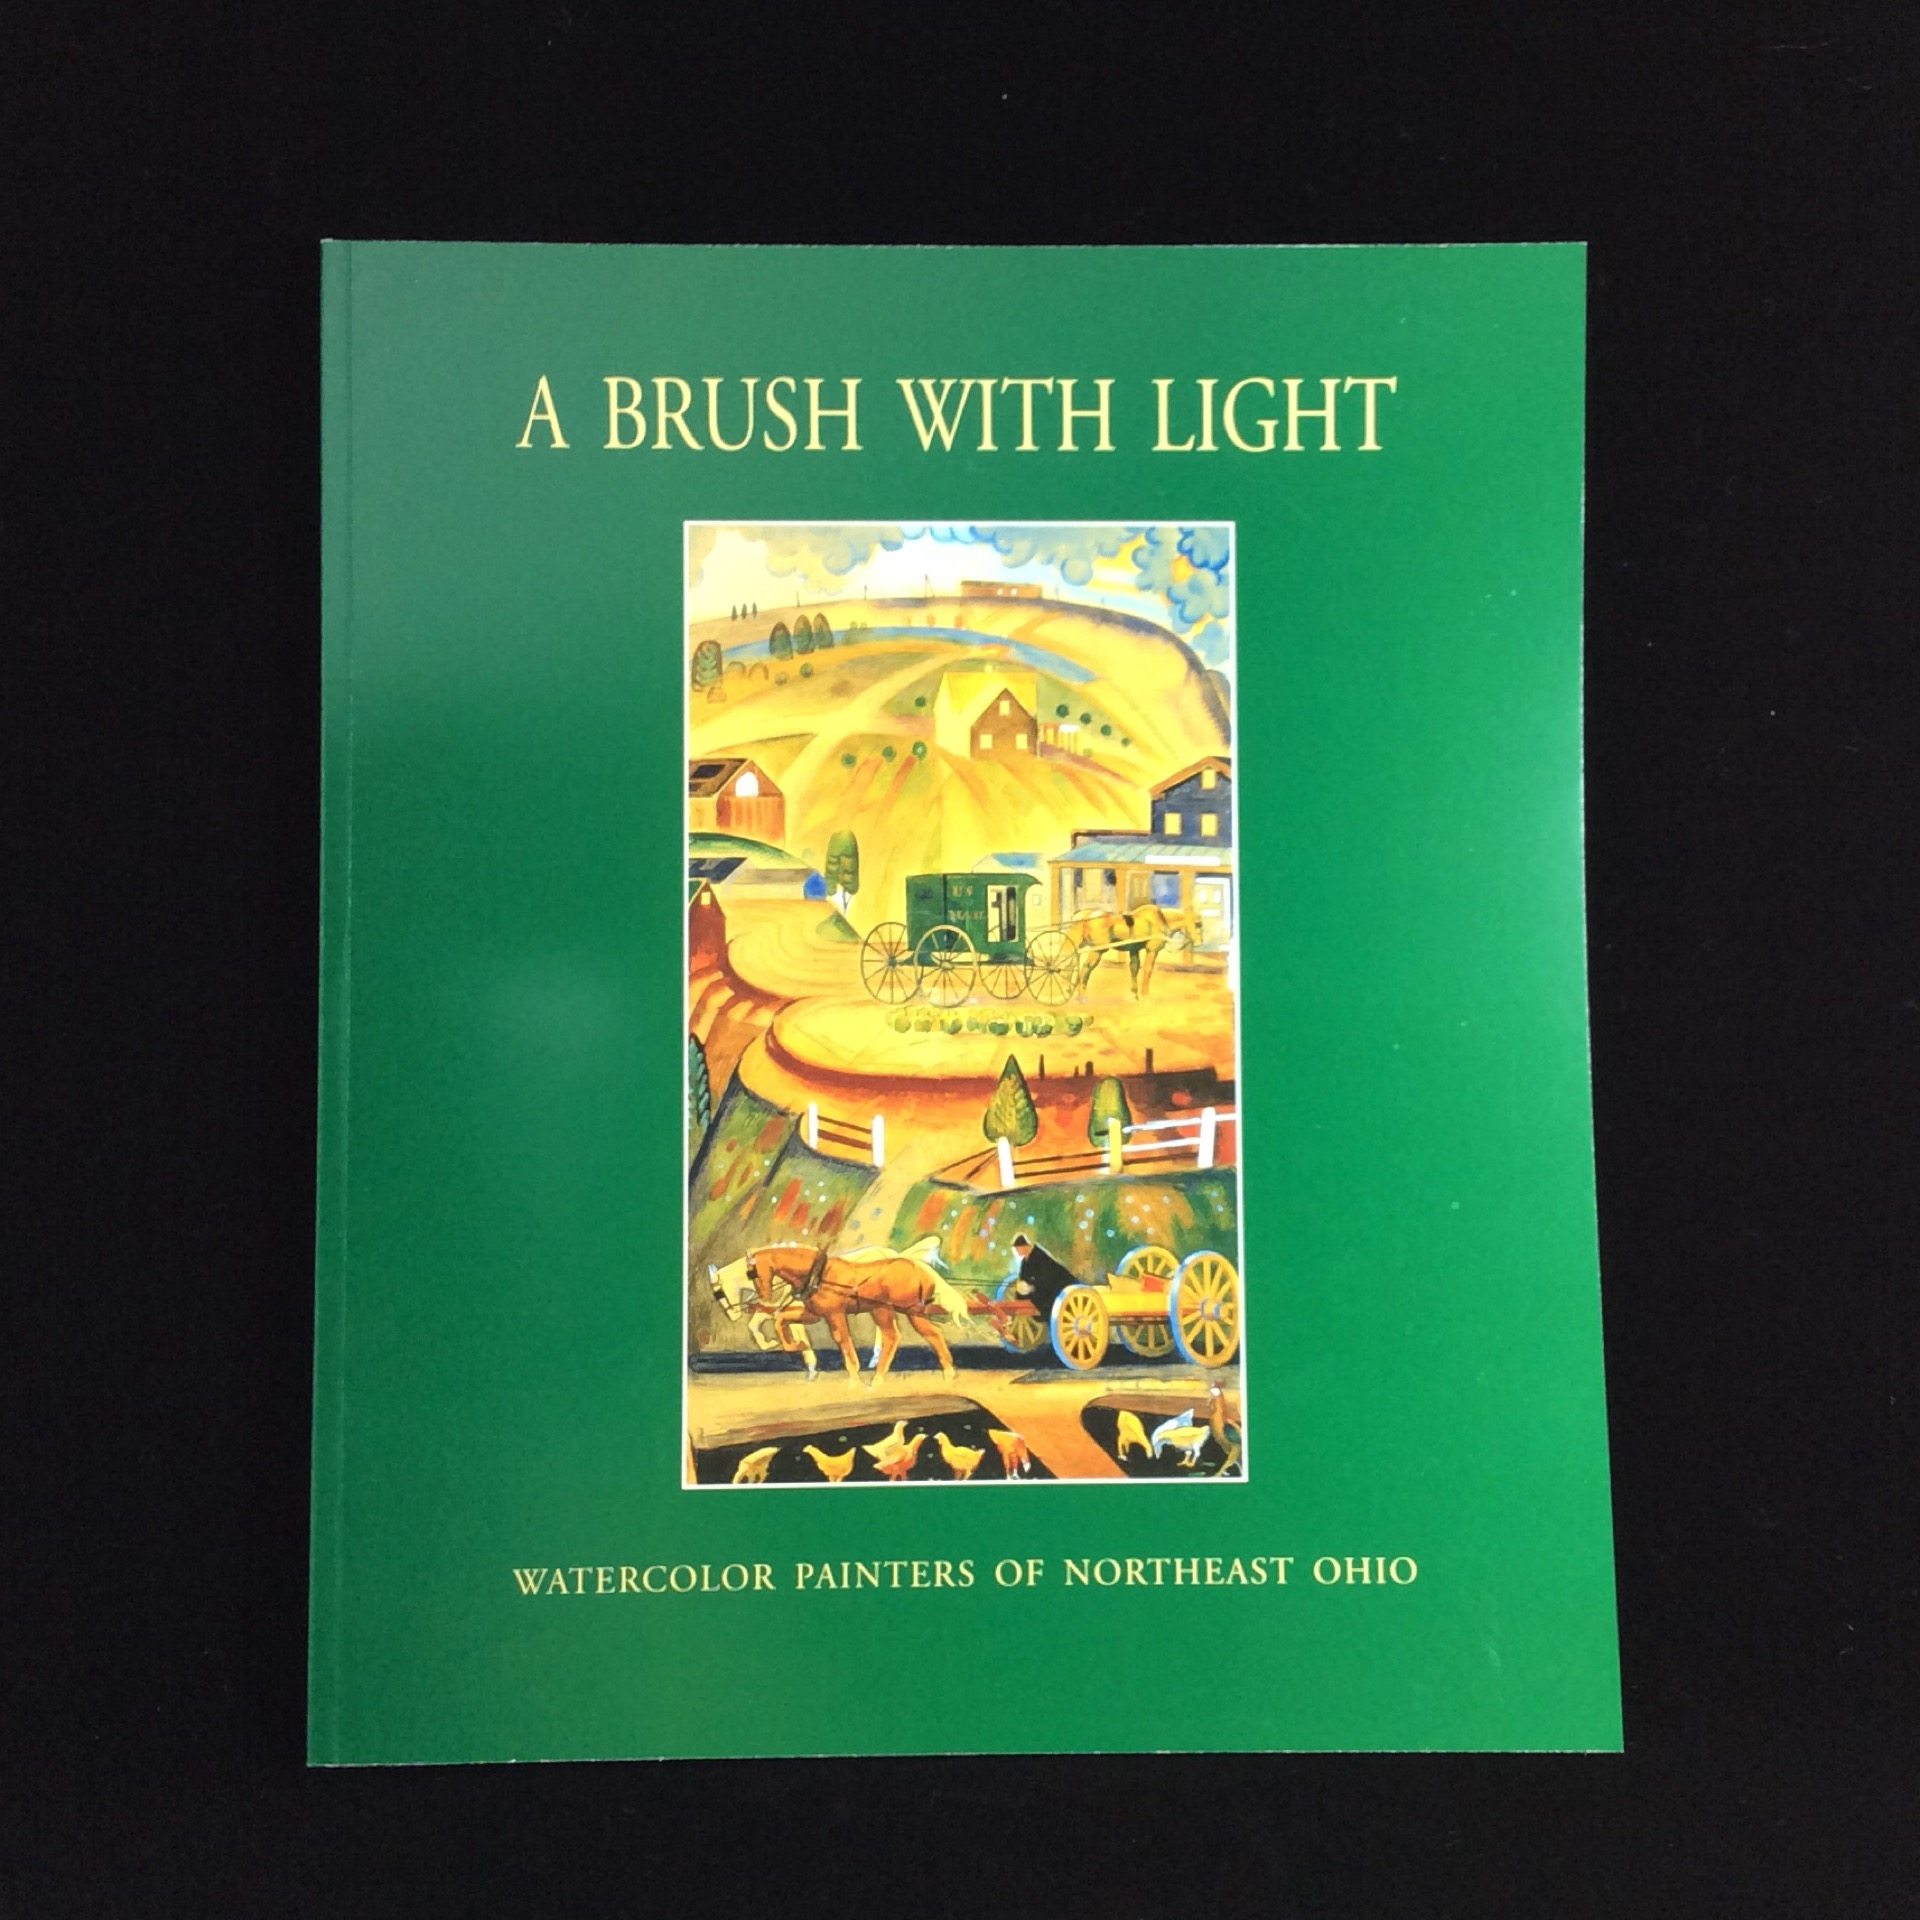 A Brush With Light